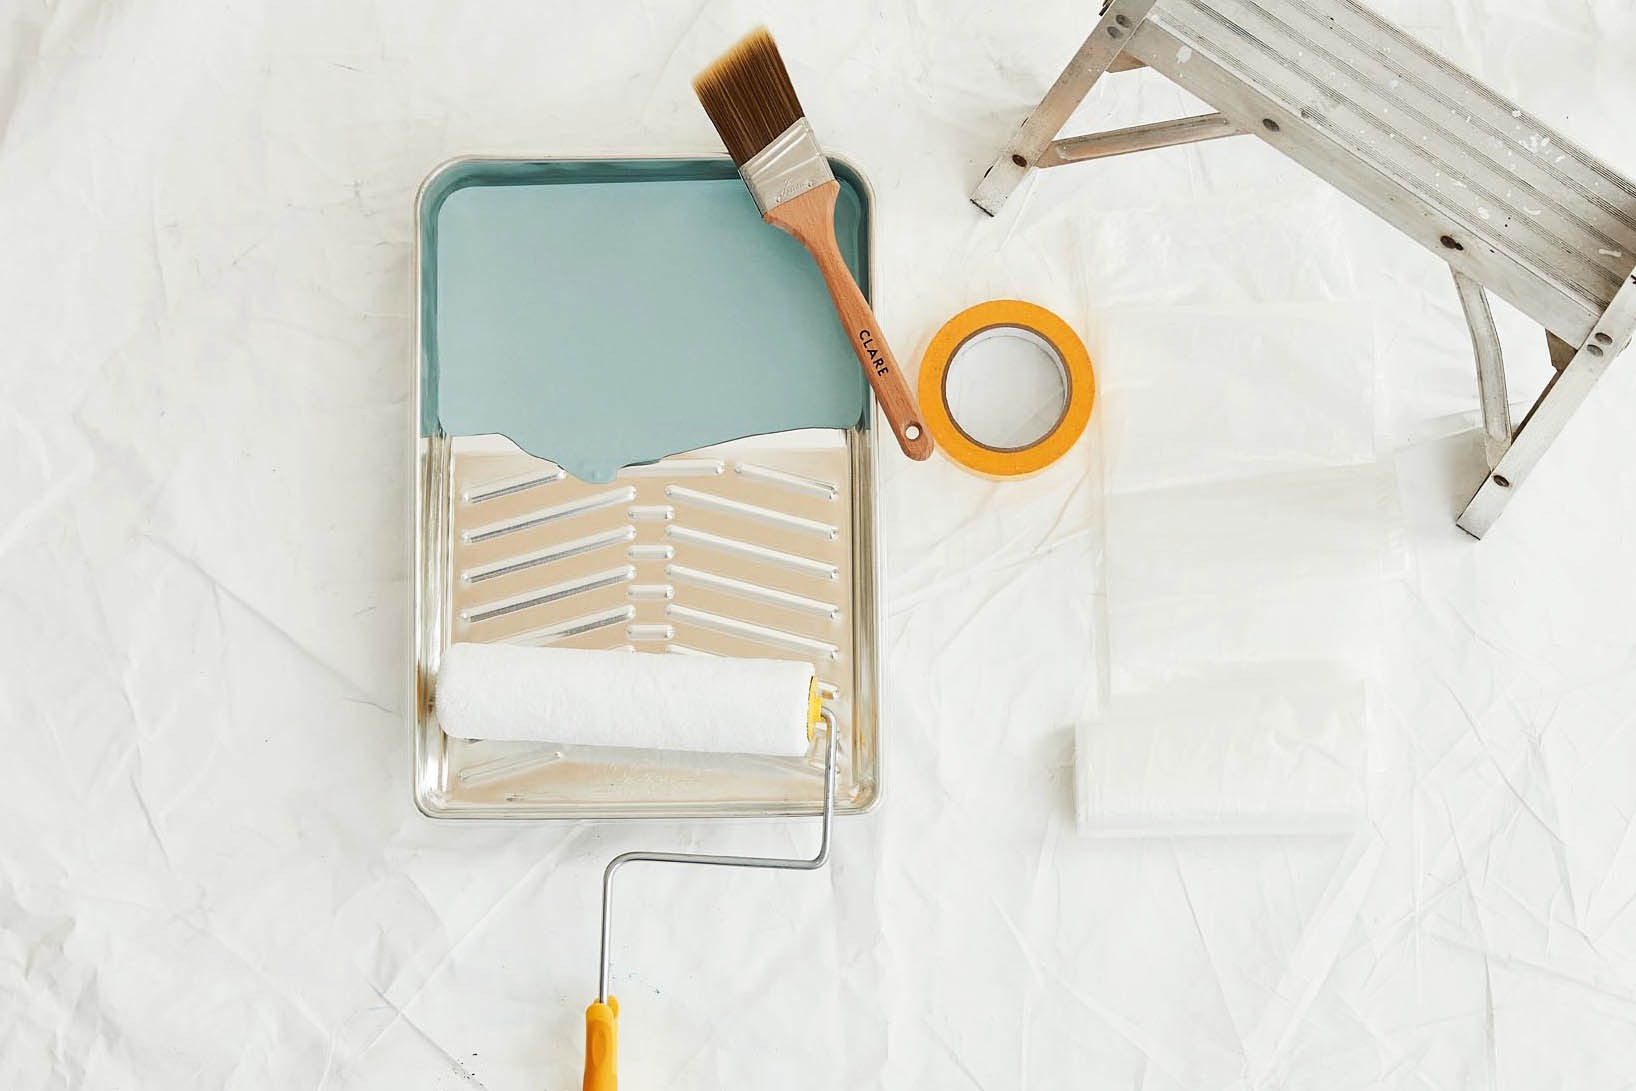 Are your painted walls in need of a touch up? Learn how to touch up paint the right way with these easy tips and keep your paint finish looking beautiful.